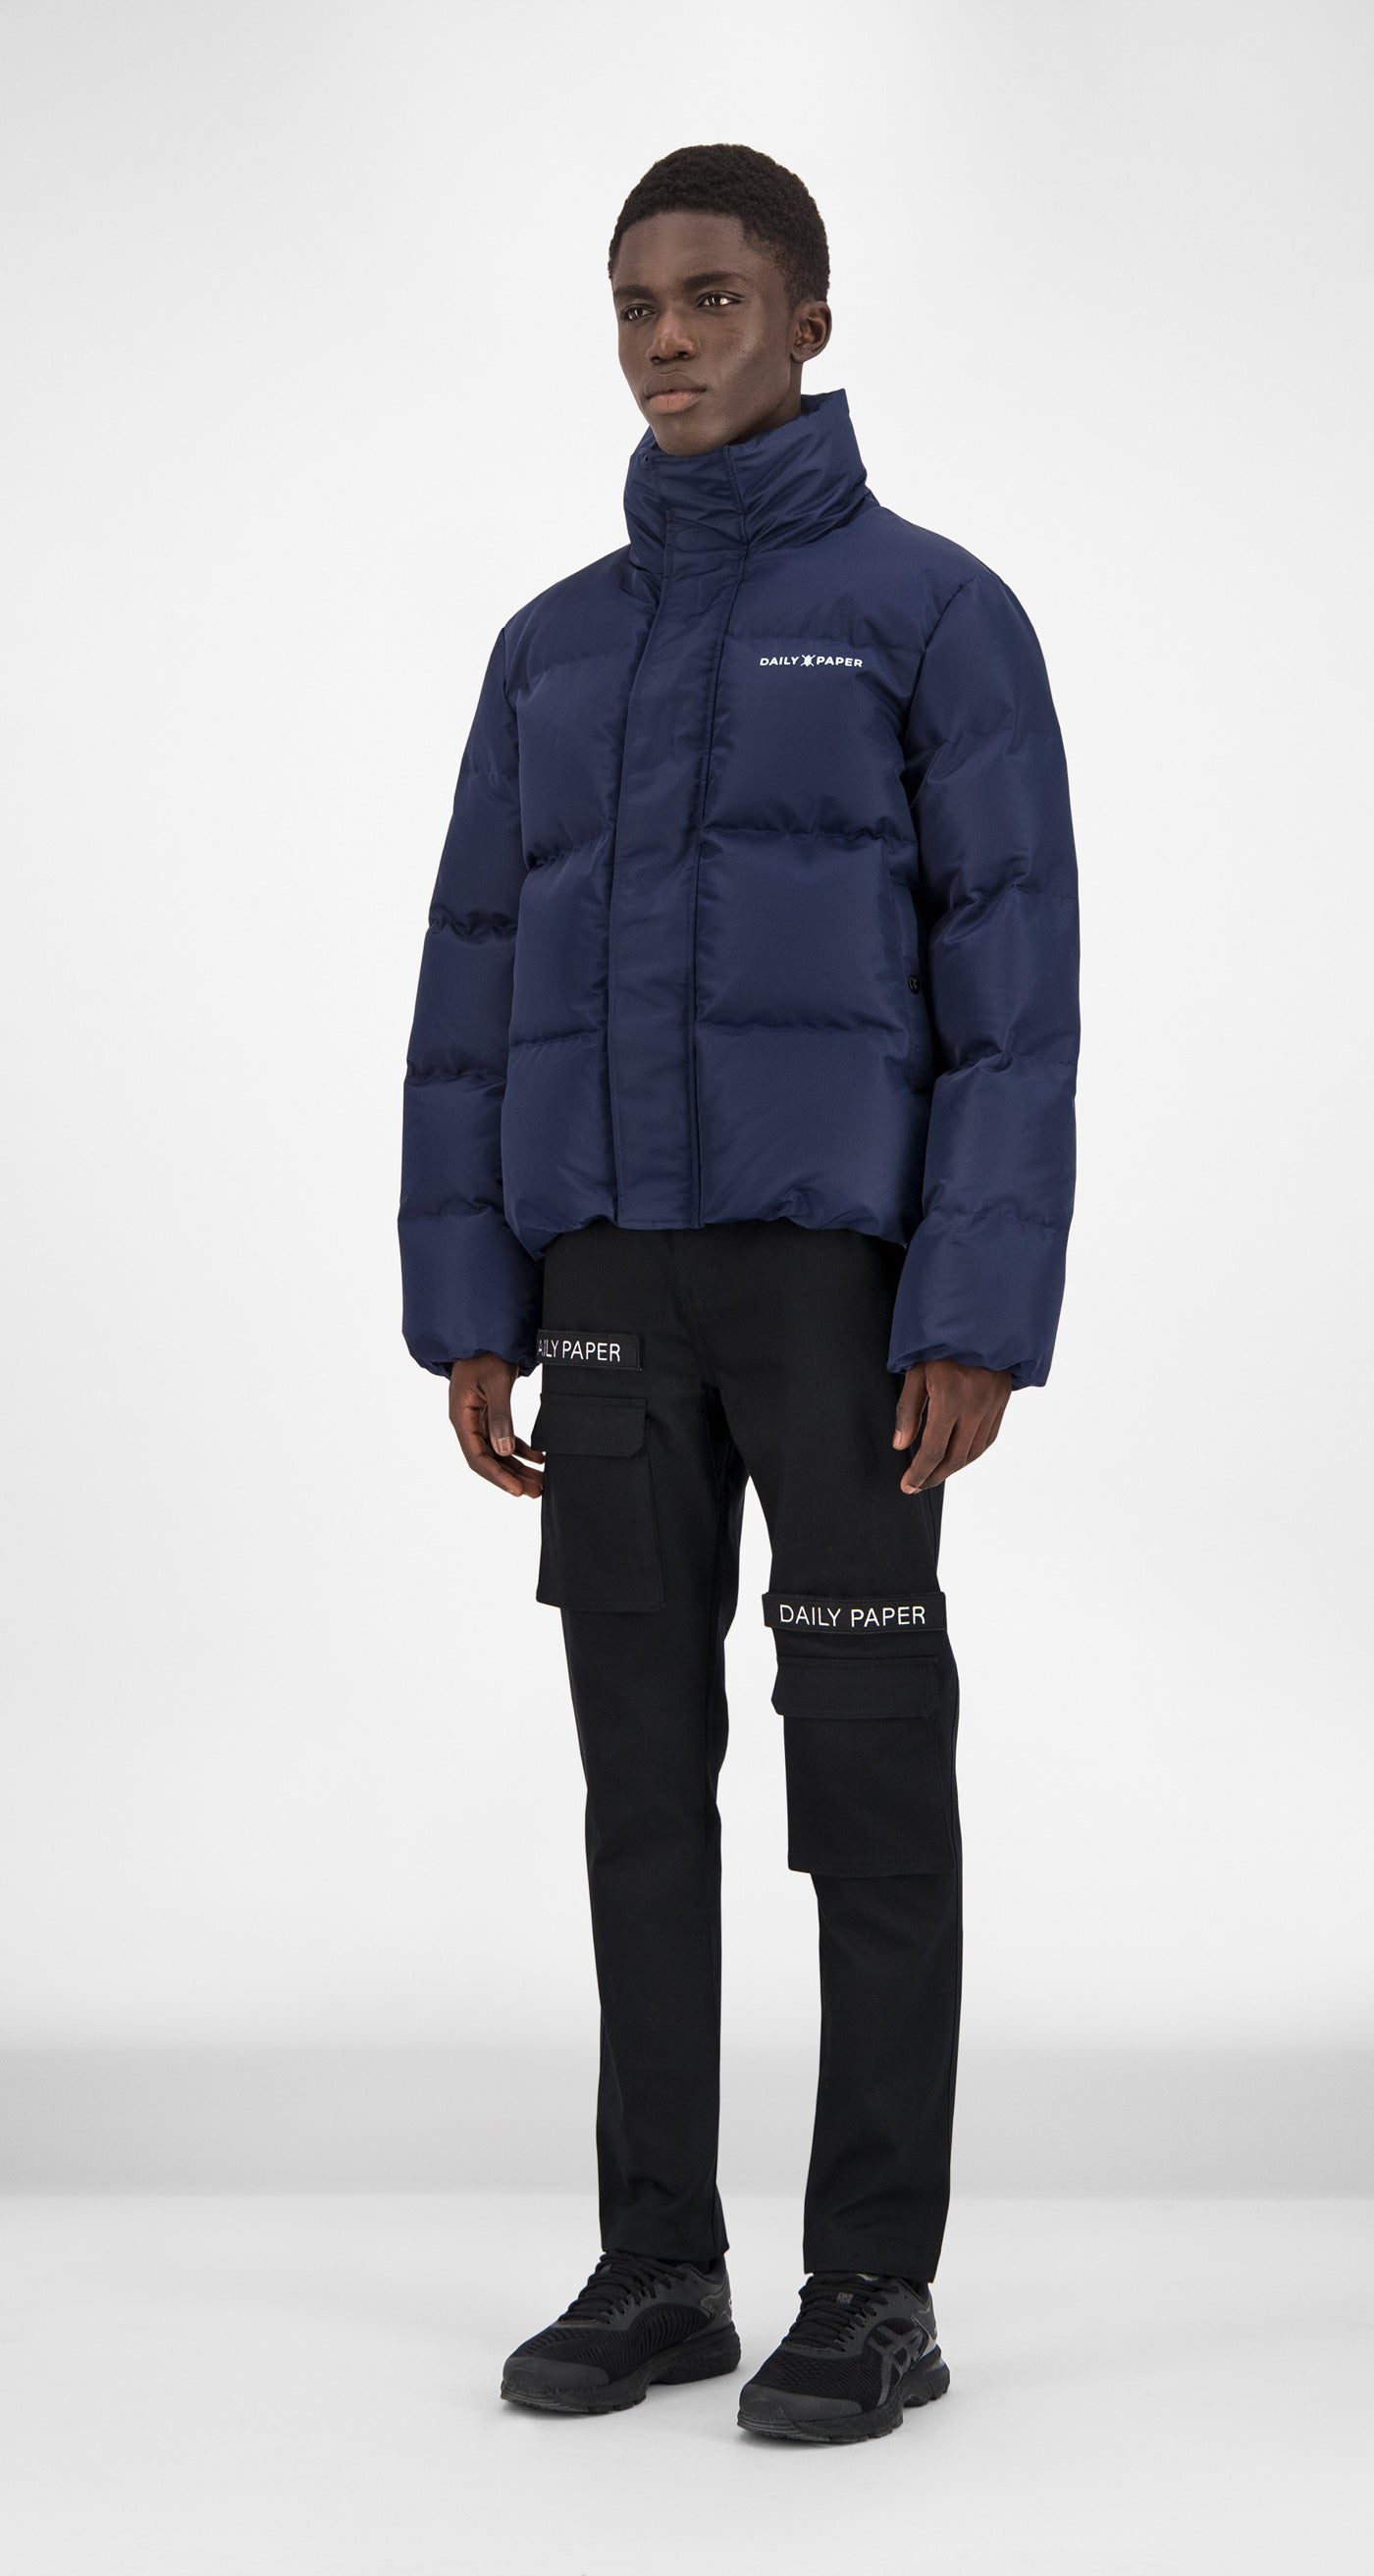 Daily Paper - Navy Puffer Jacket Men